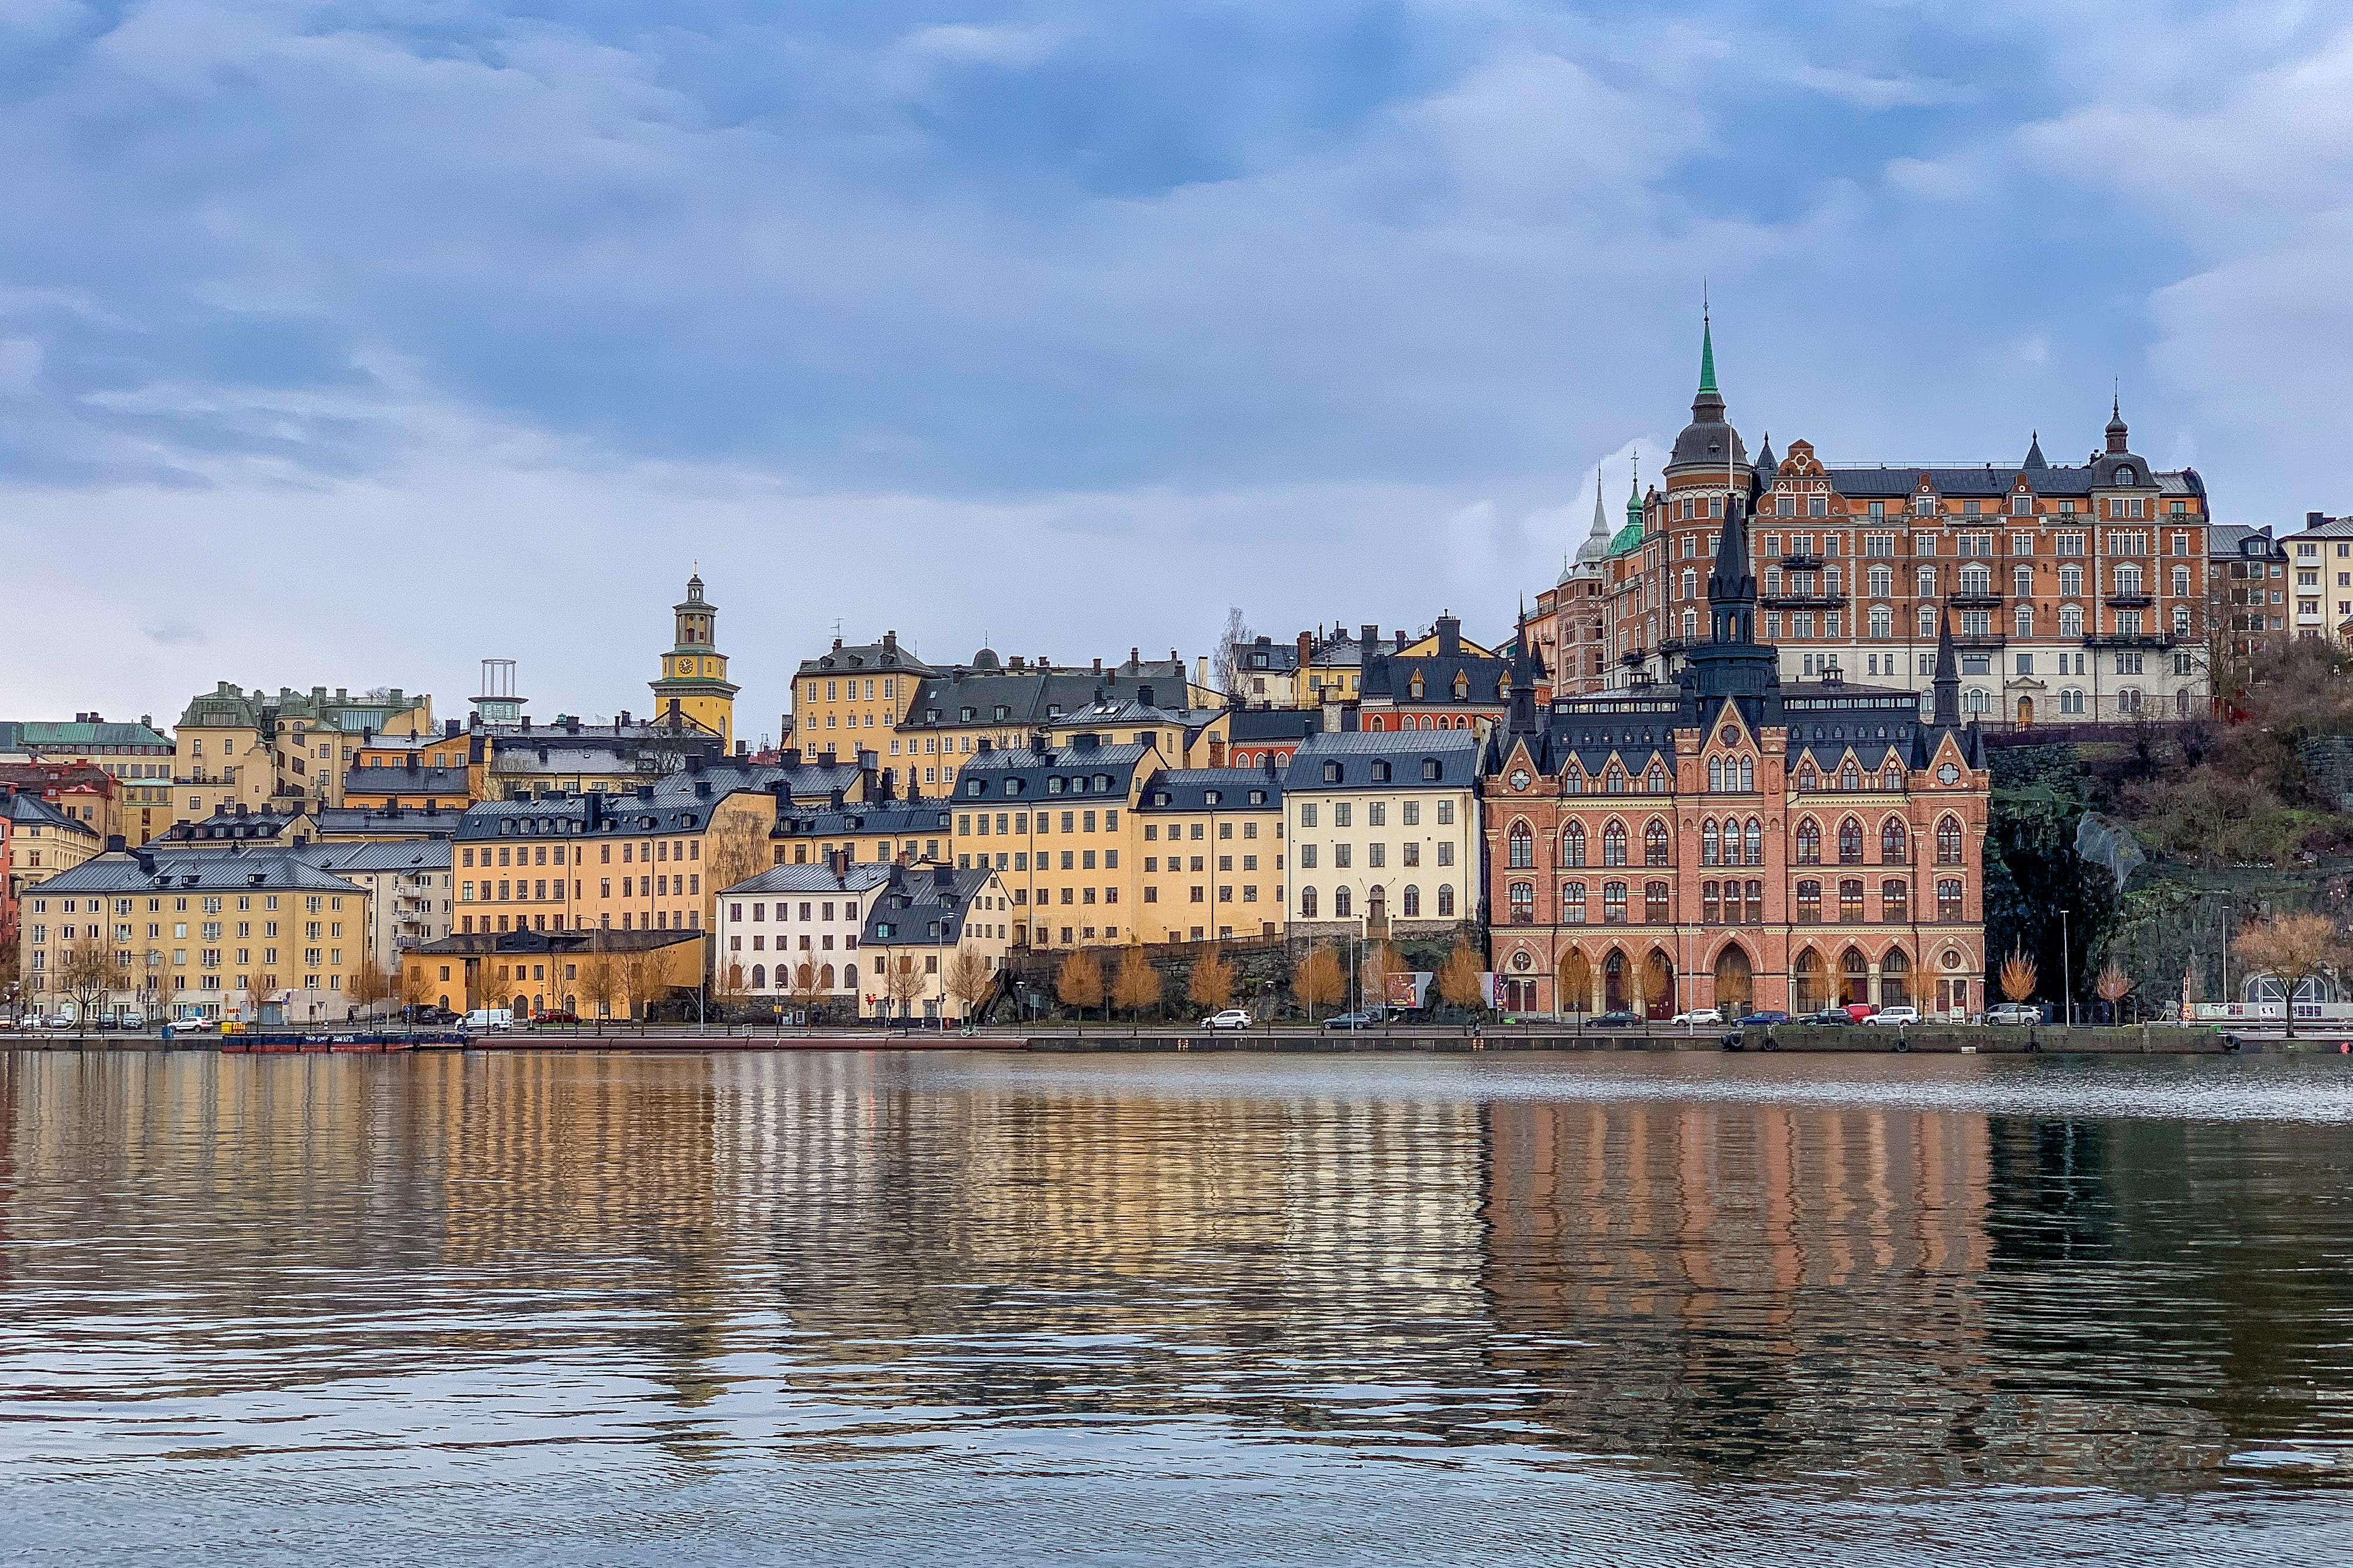 Cederquist and ZealiD carry out Sweden's first fully digital new share issue